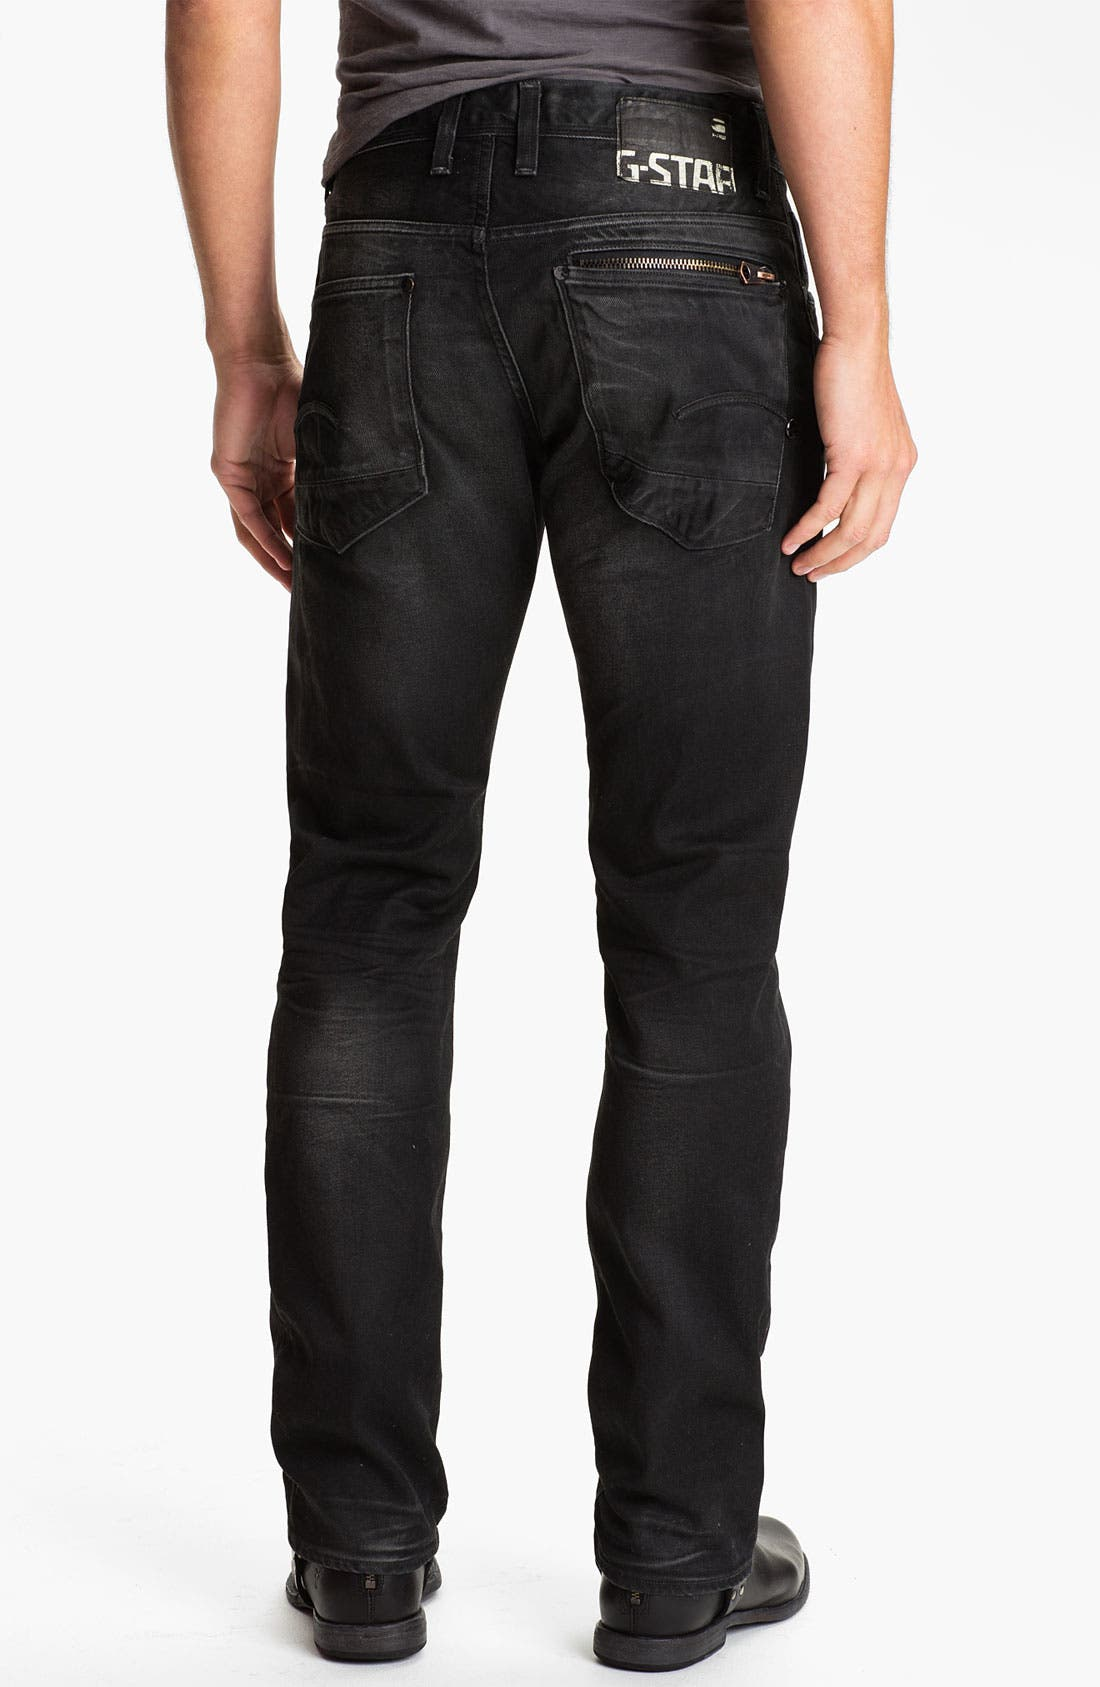 Alternate Image 1 Selected - G-Star Raw 'Attacc' Straight Leg Jeans (Dark Aged)